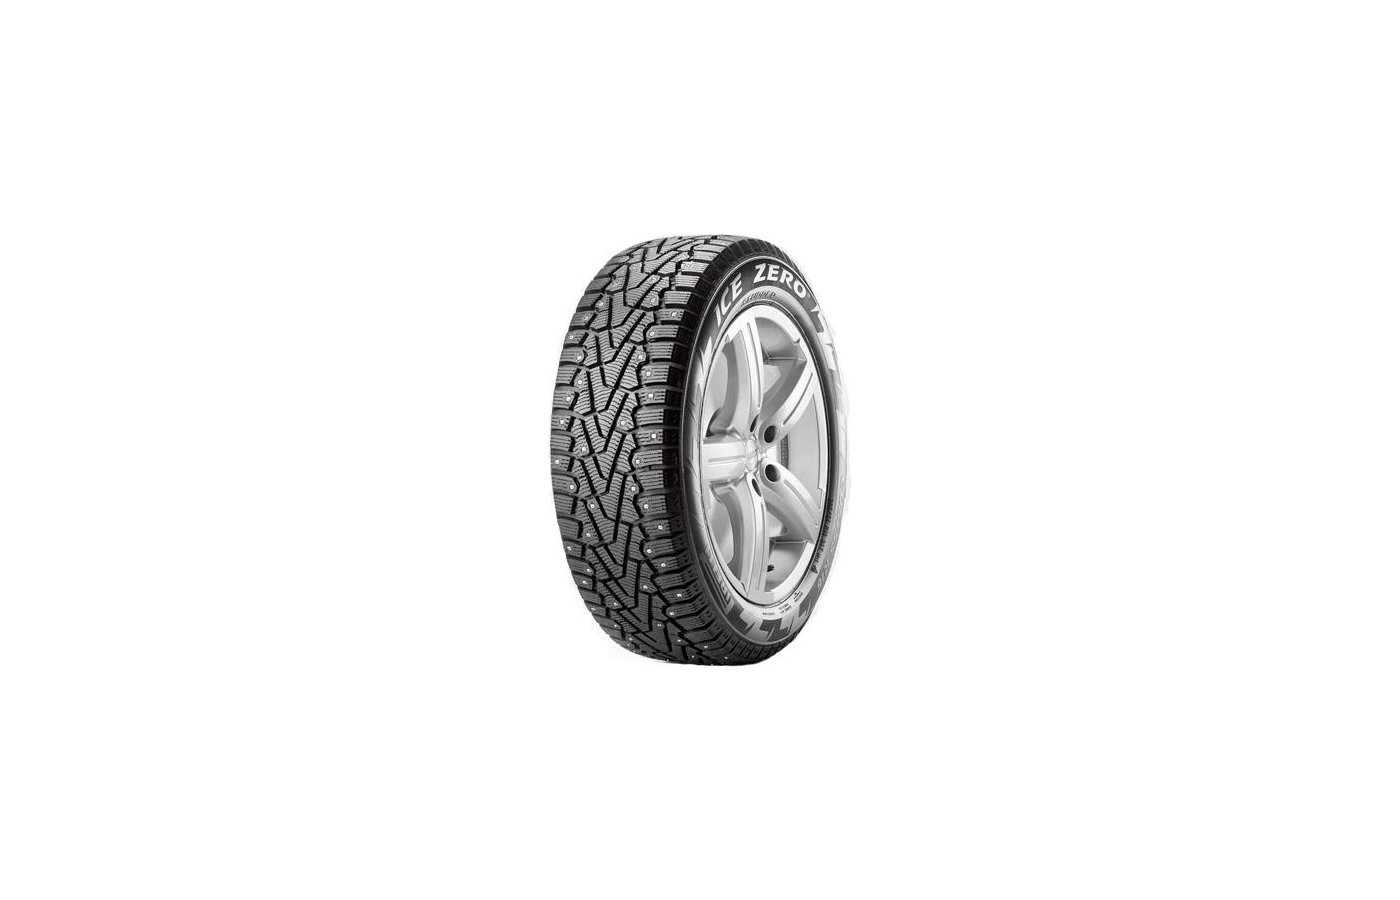 Шина Pirelli Winter Ice Zero 225/65 R17 TL 106T XL шип